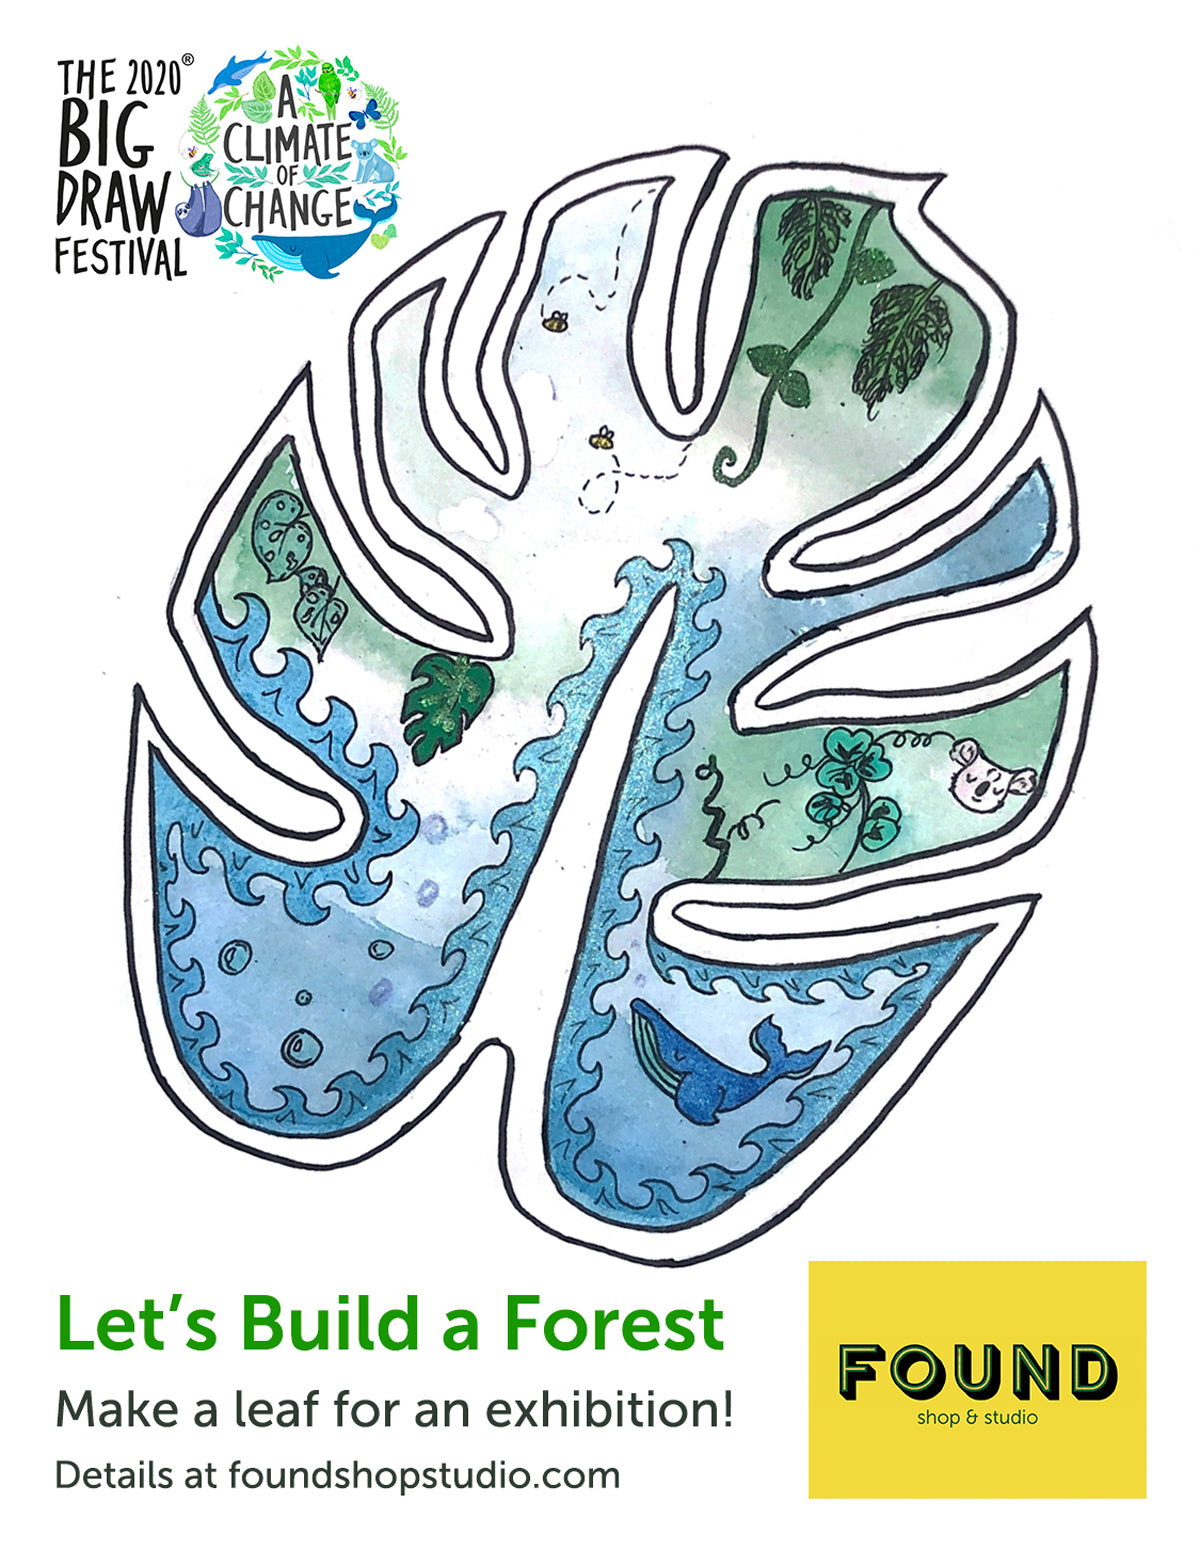 The Big Draw: Let's Build a Forest